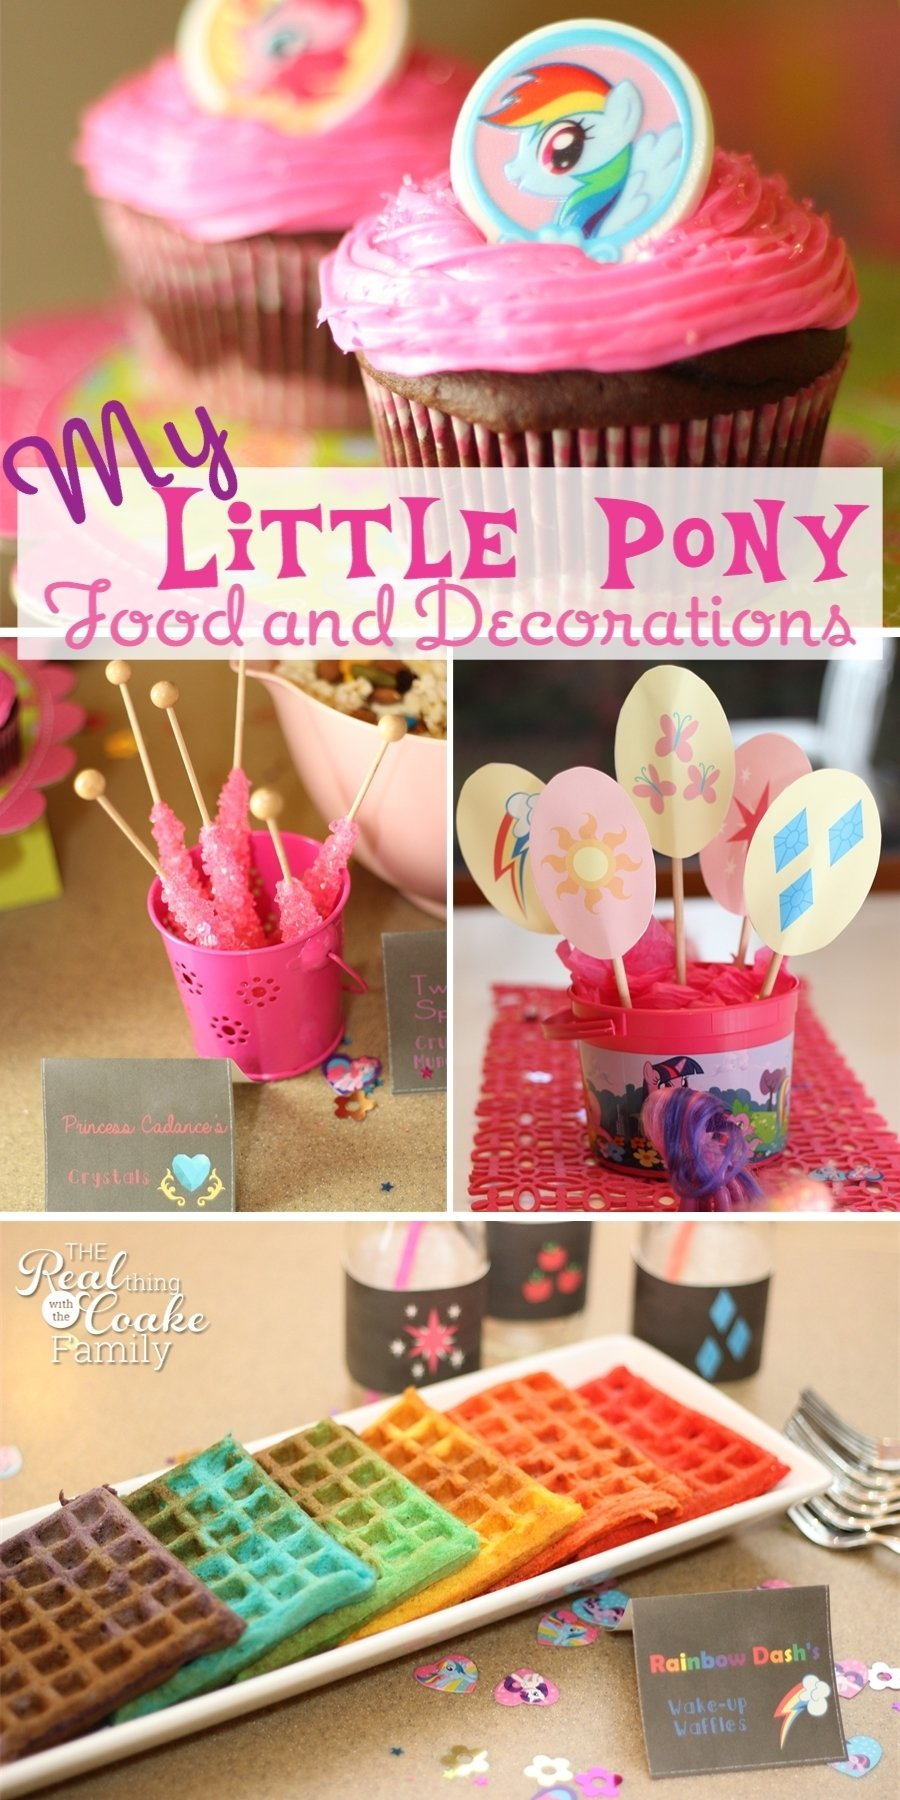 10 Stylish My Little Pony Party Ideas my little pony birthday party food and decorating ideas 2 2020